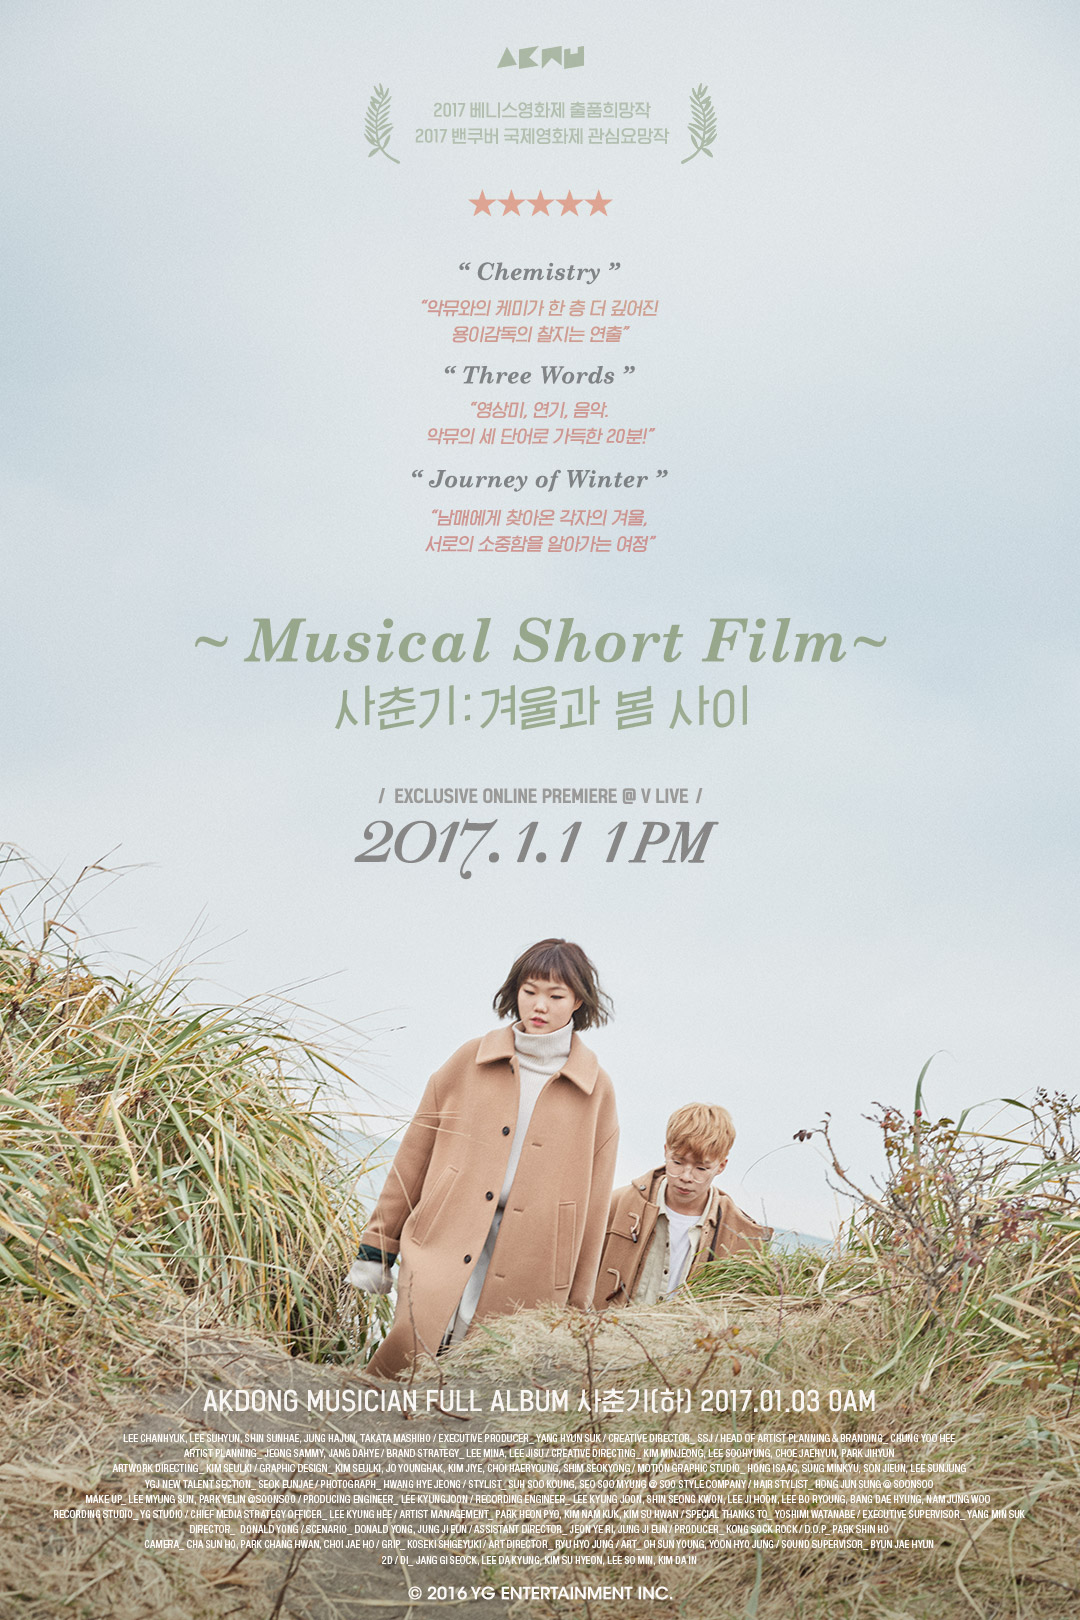 Akdong Musician musical short film